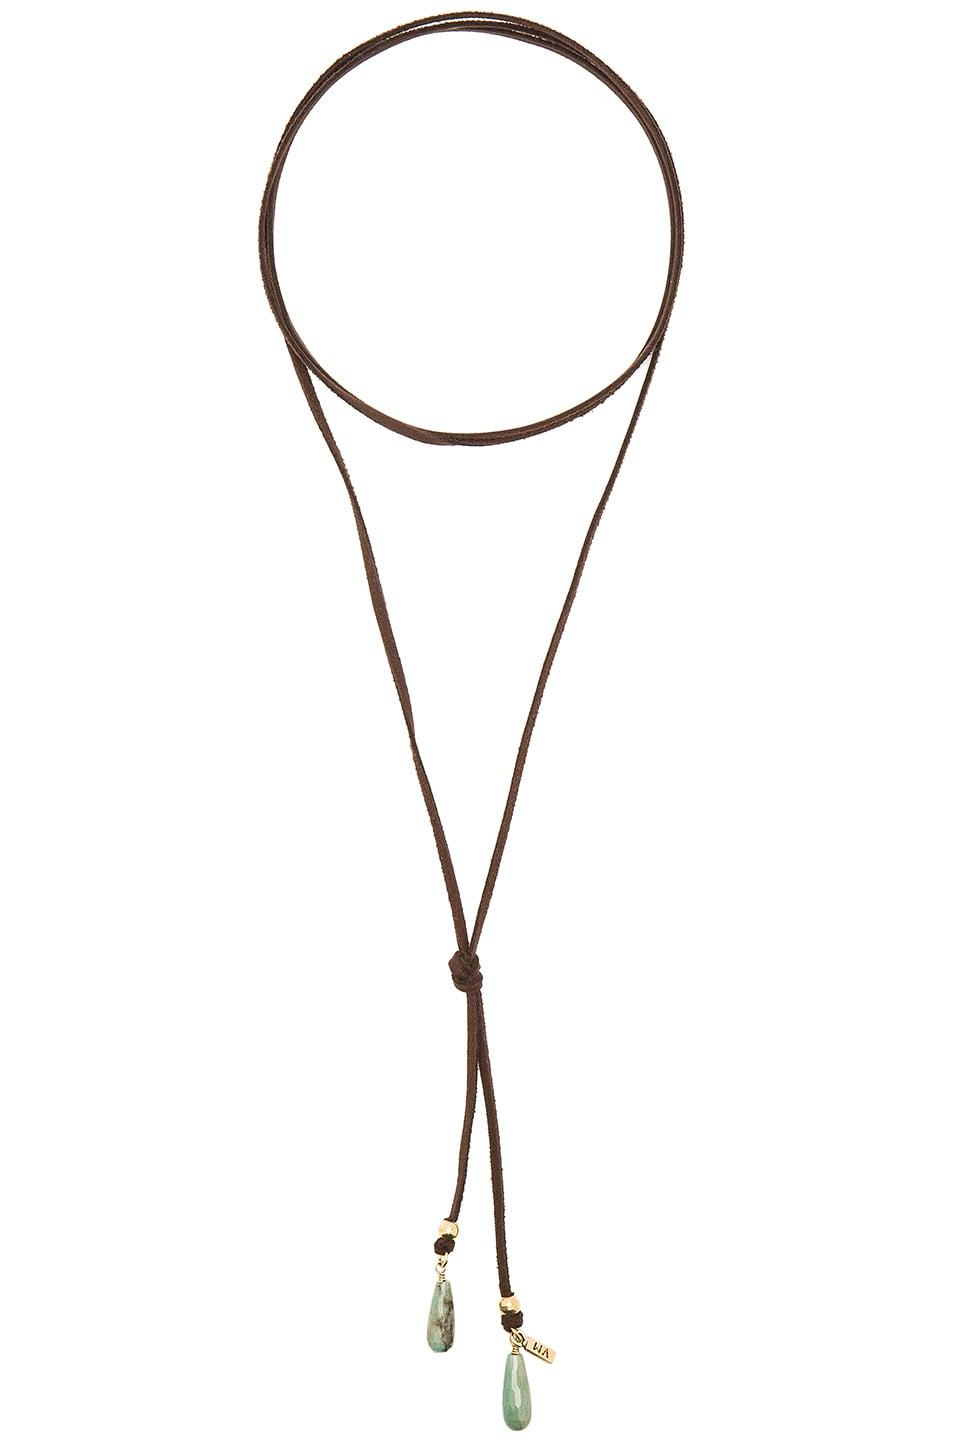 Bolo Green Stone Necklace by Vanessa Mooney